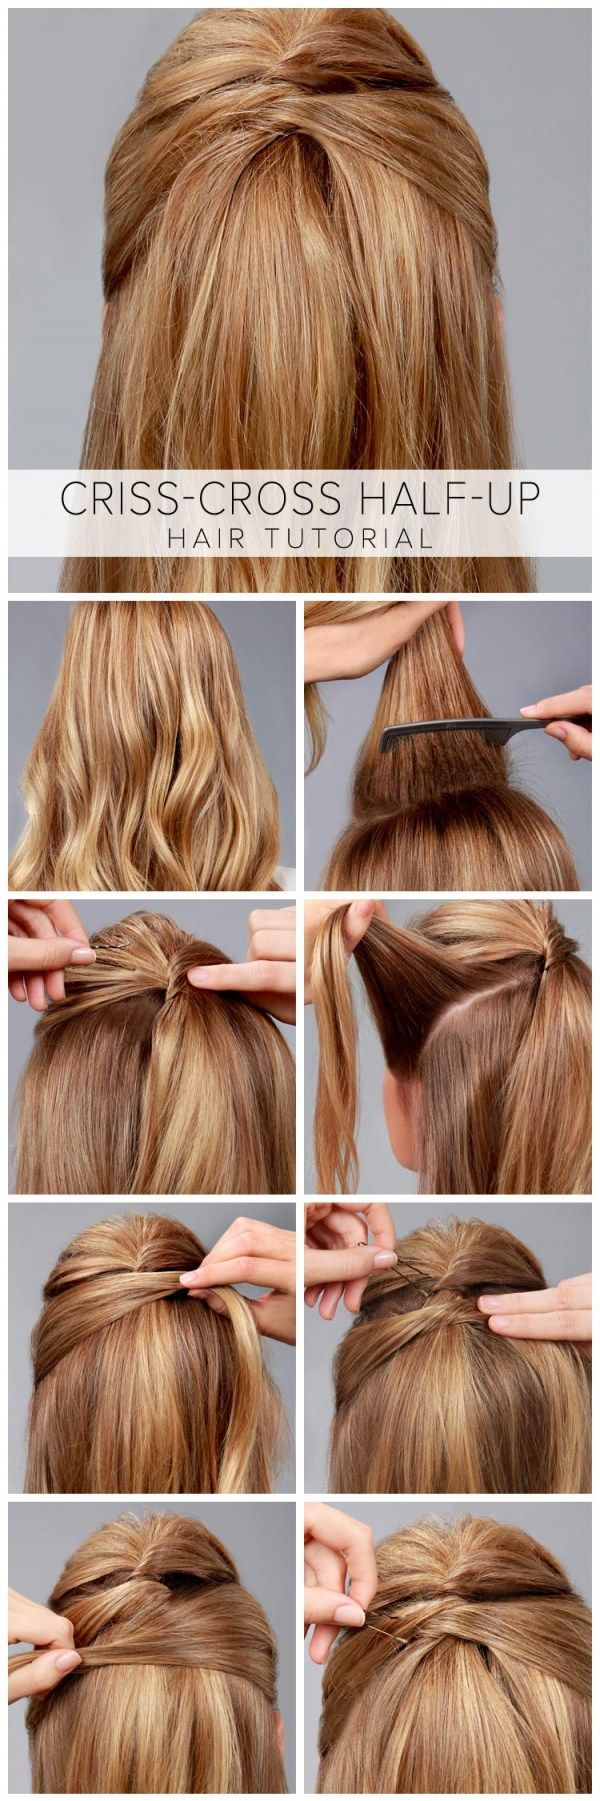 461 best cute easy hairstyles images on pinterest | hairstyle